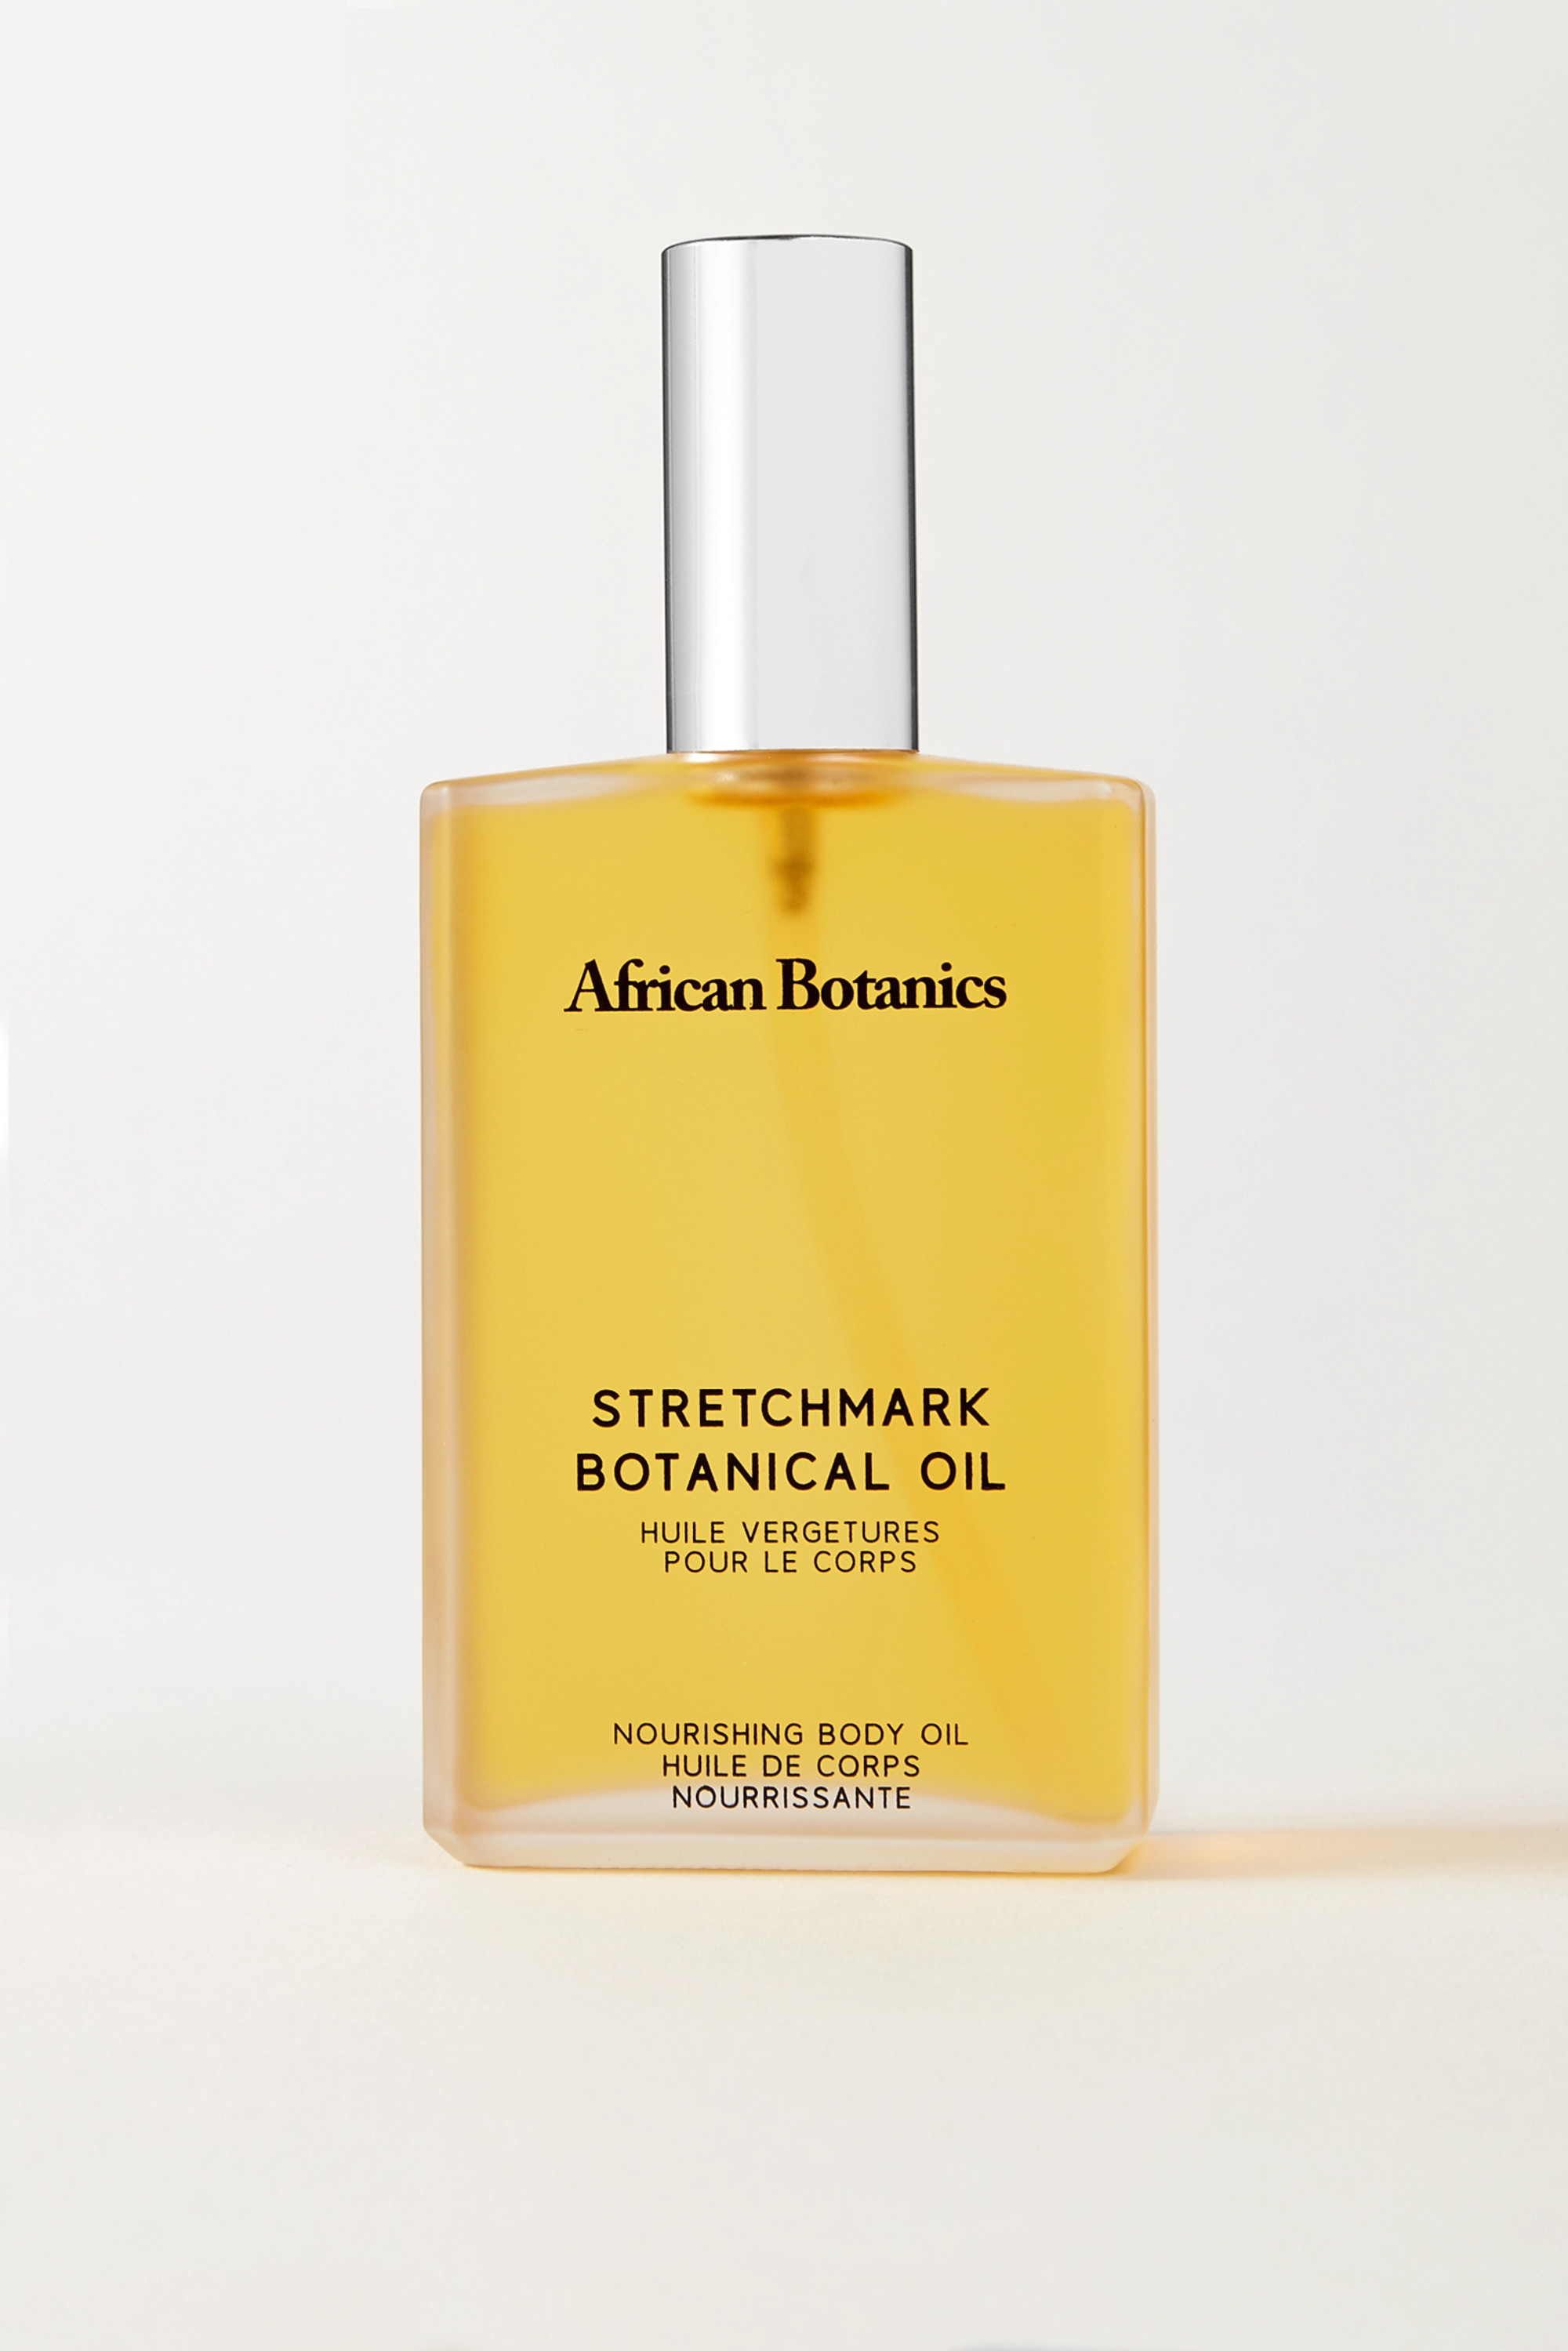 African Botanics Stretchmark Botanical Body Oil, 100ml